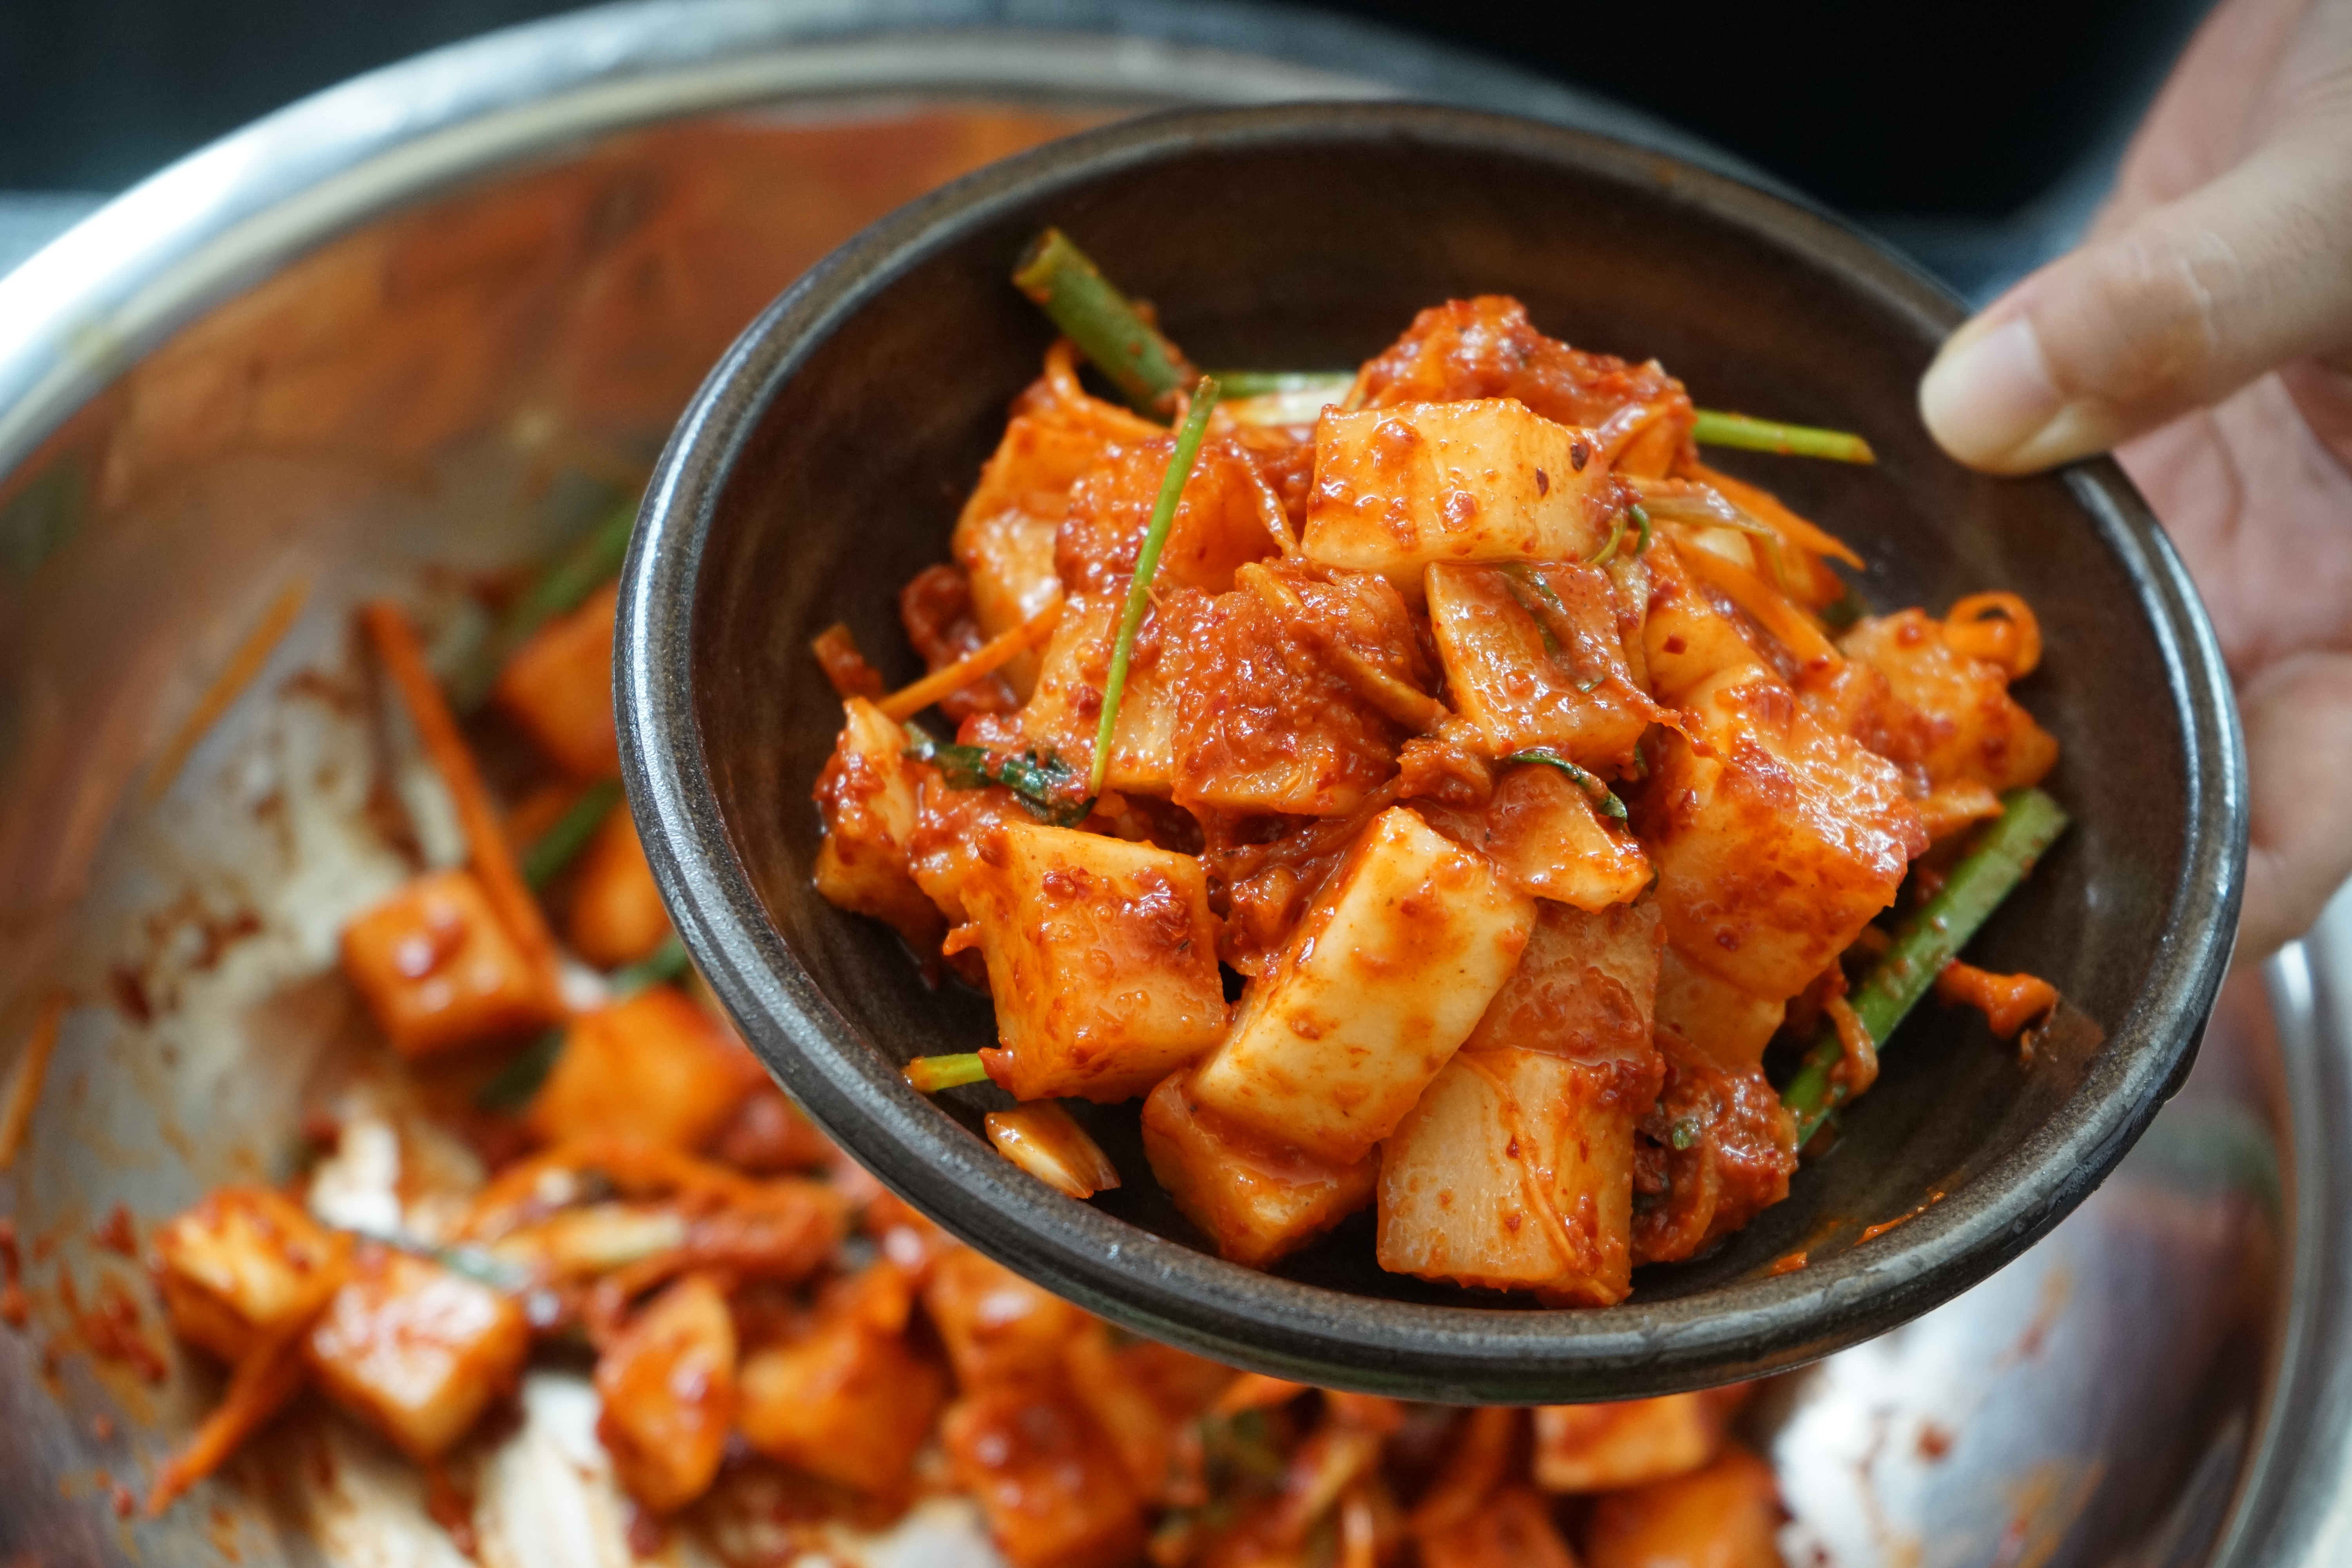 Cropped Image Of Hand Holding Kimchee In Bowl Over Cooking Pan